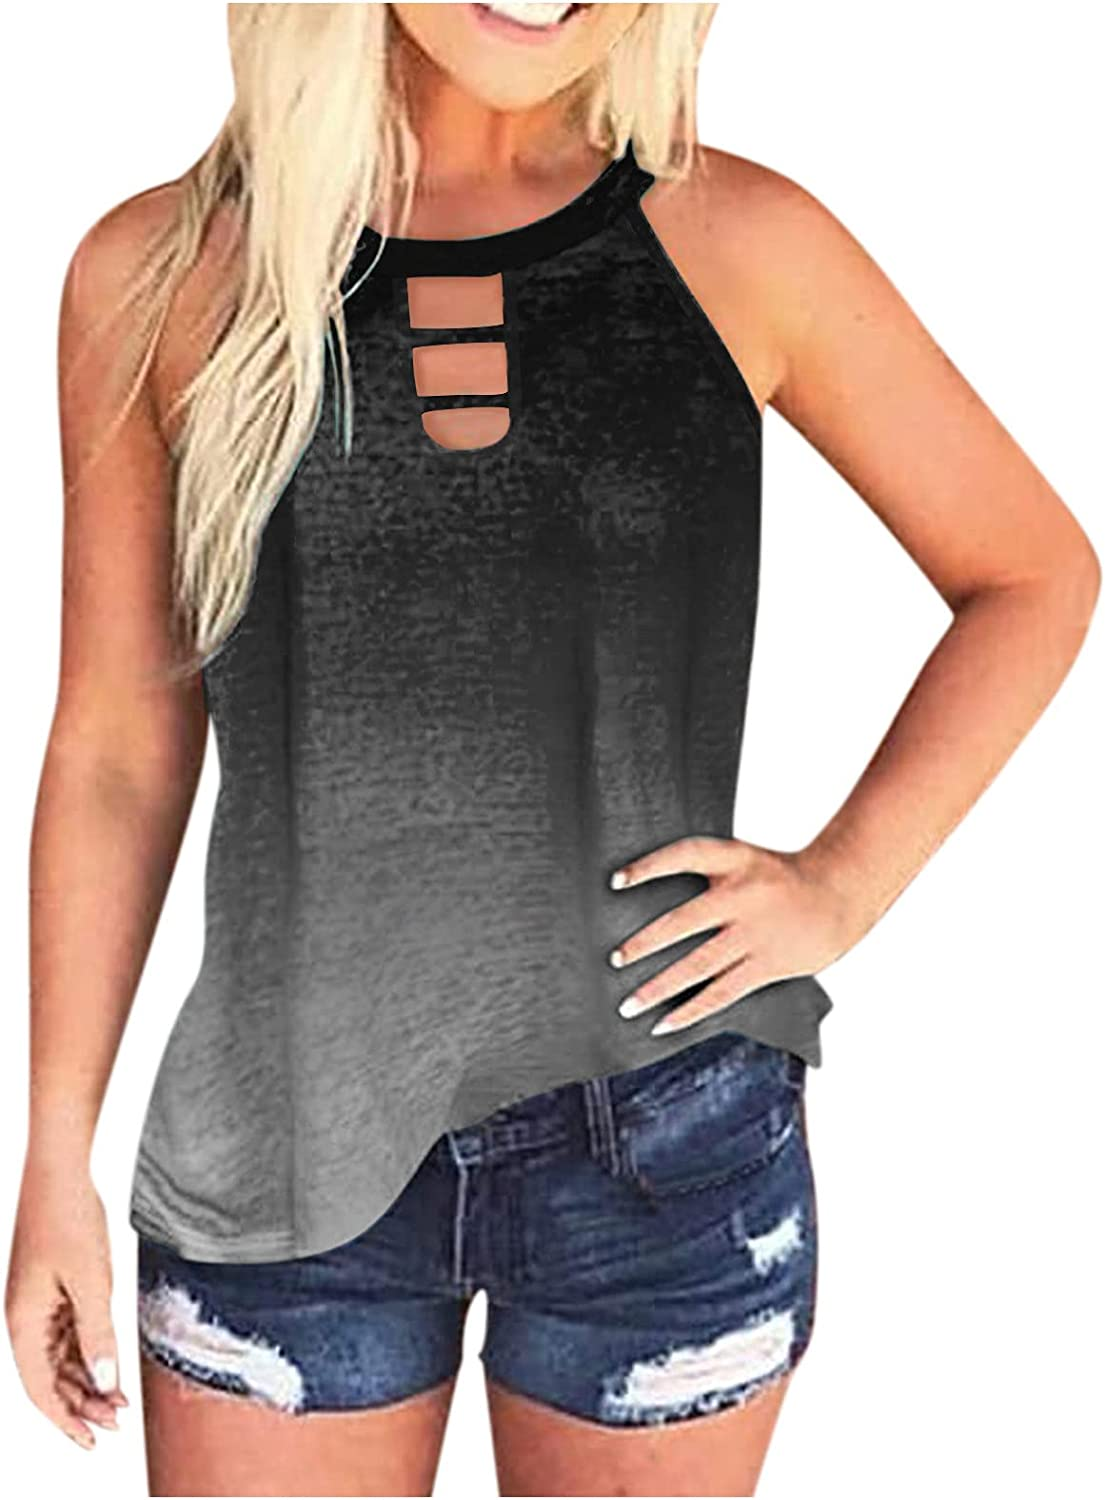 Gerichy Womens Tank Tops Loose Fit,Womens Casual Summer Workout Sleeveless Tank Shirts Blouses Tunics Tees Vest